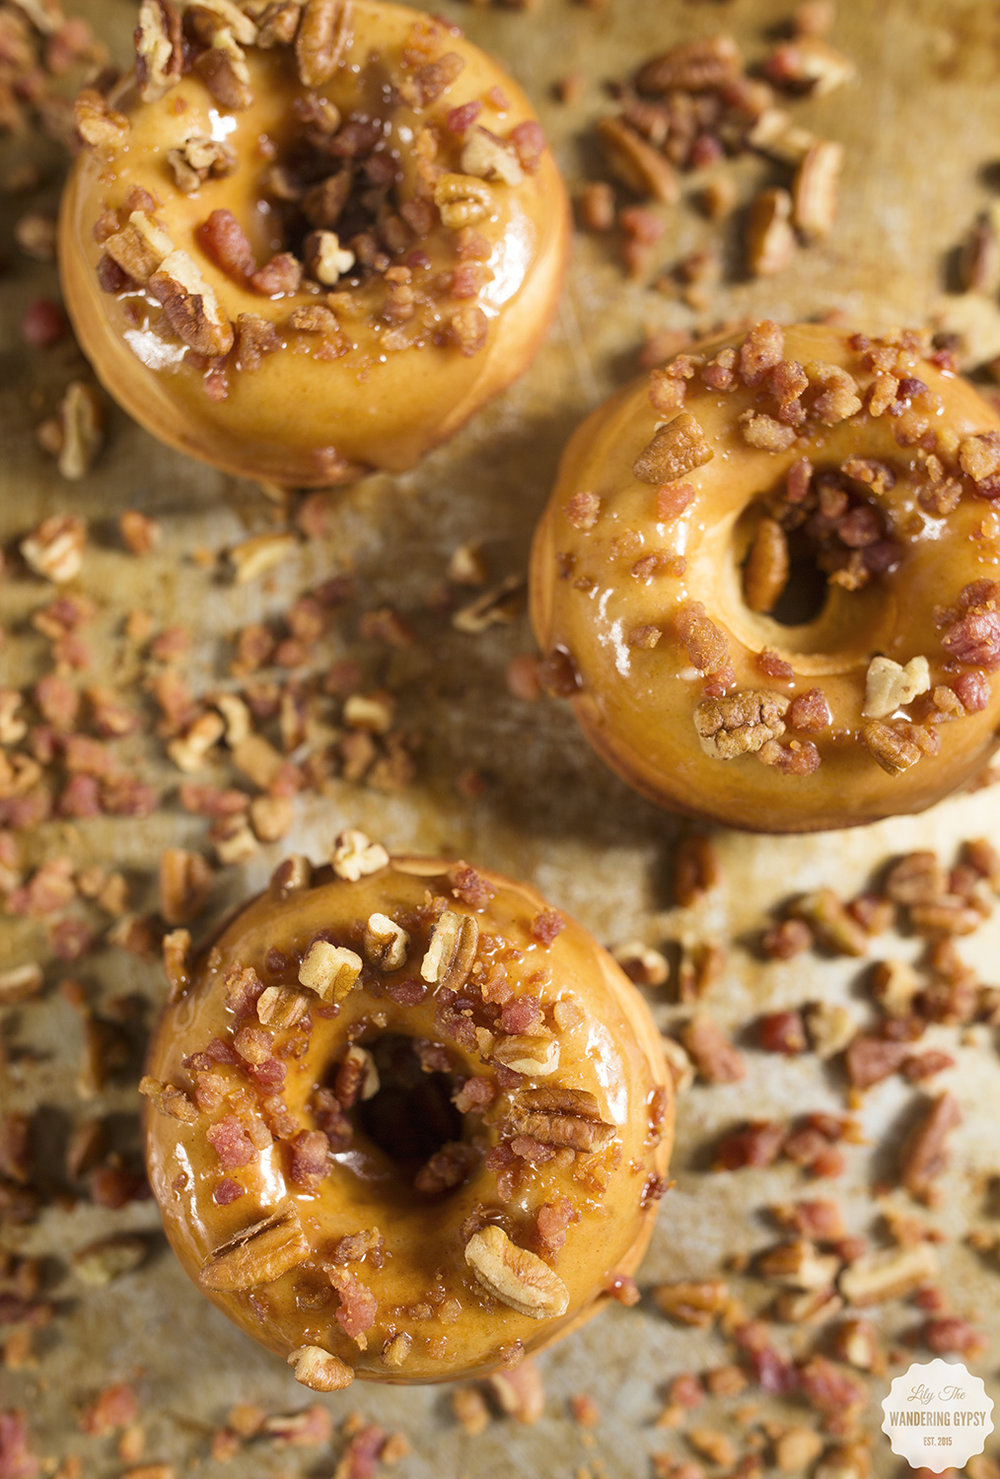 These Baked Apple Donuts with Maple Bacon Pecan Glaze are out of this world!